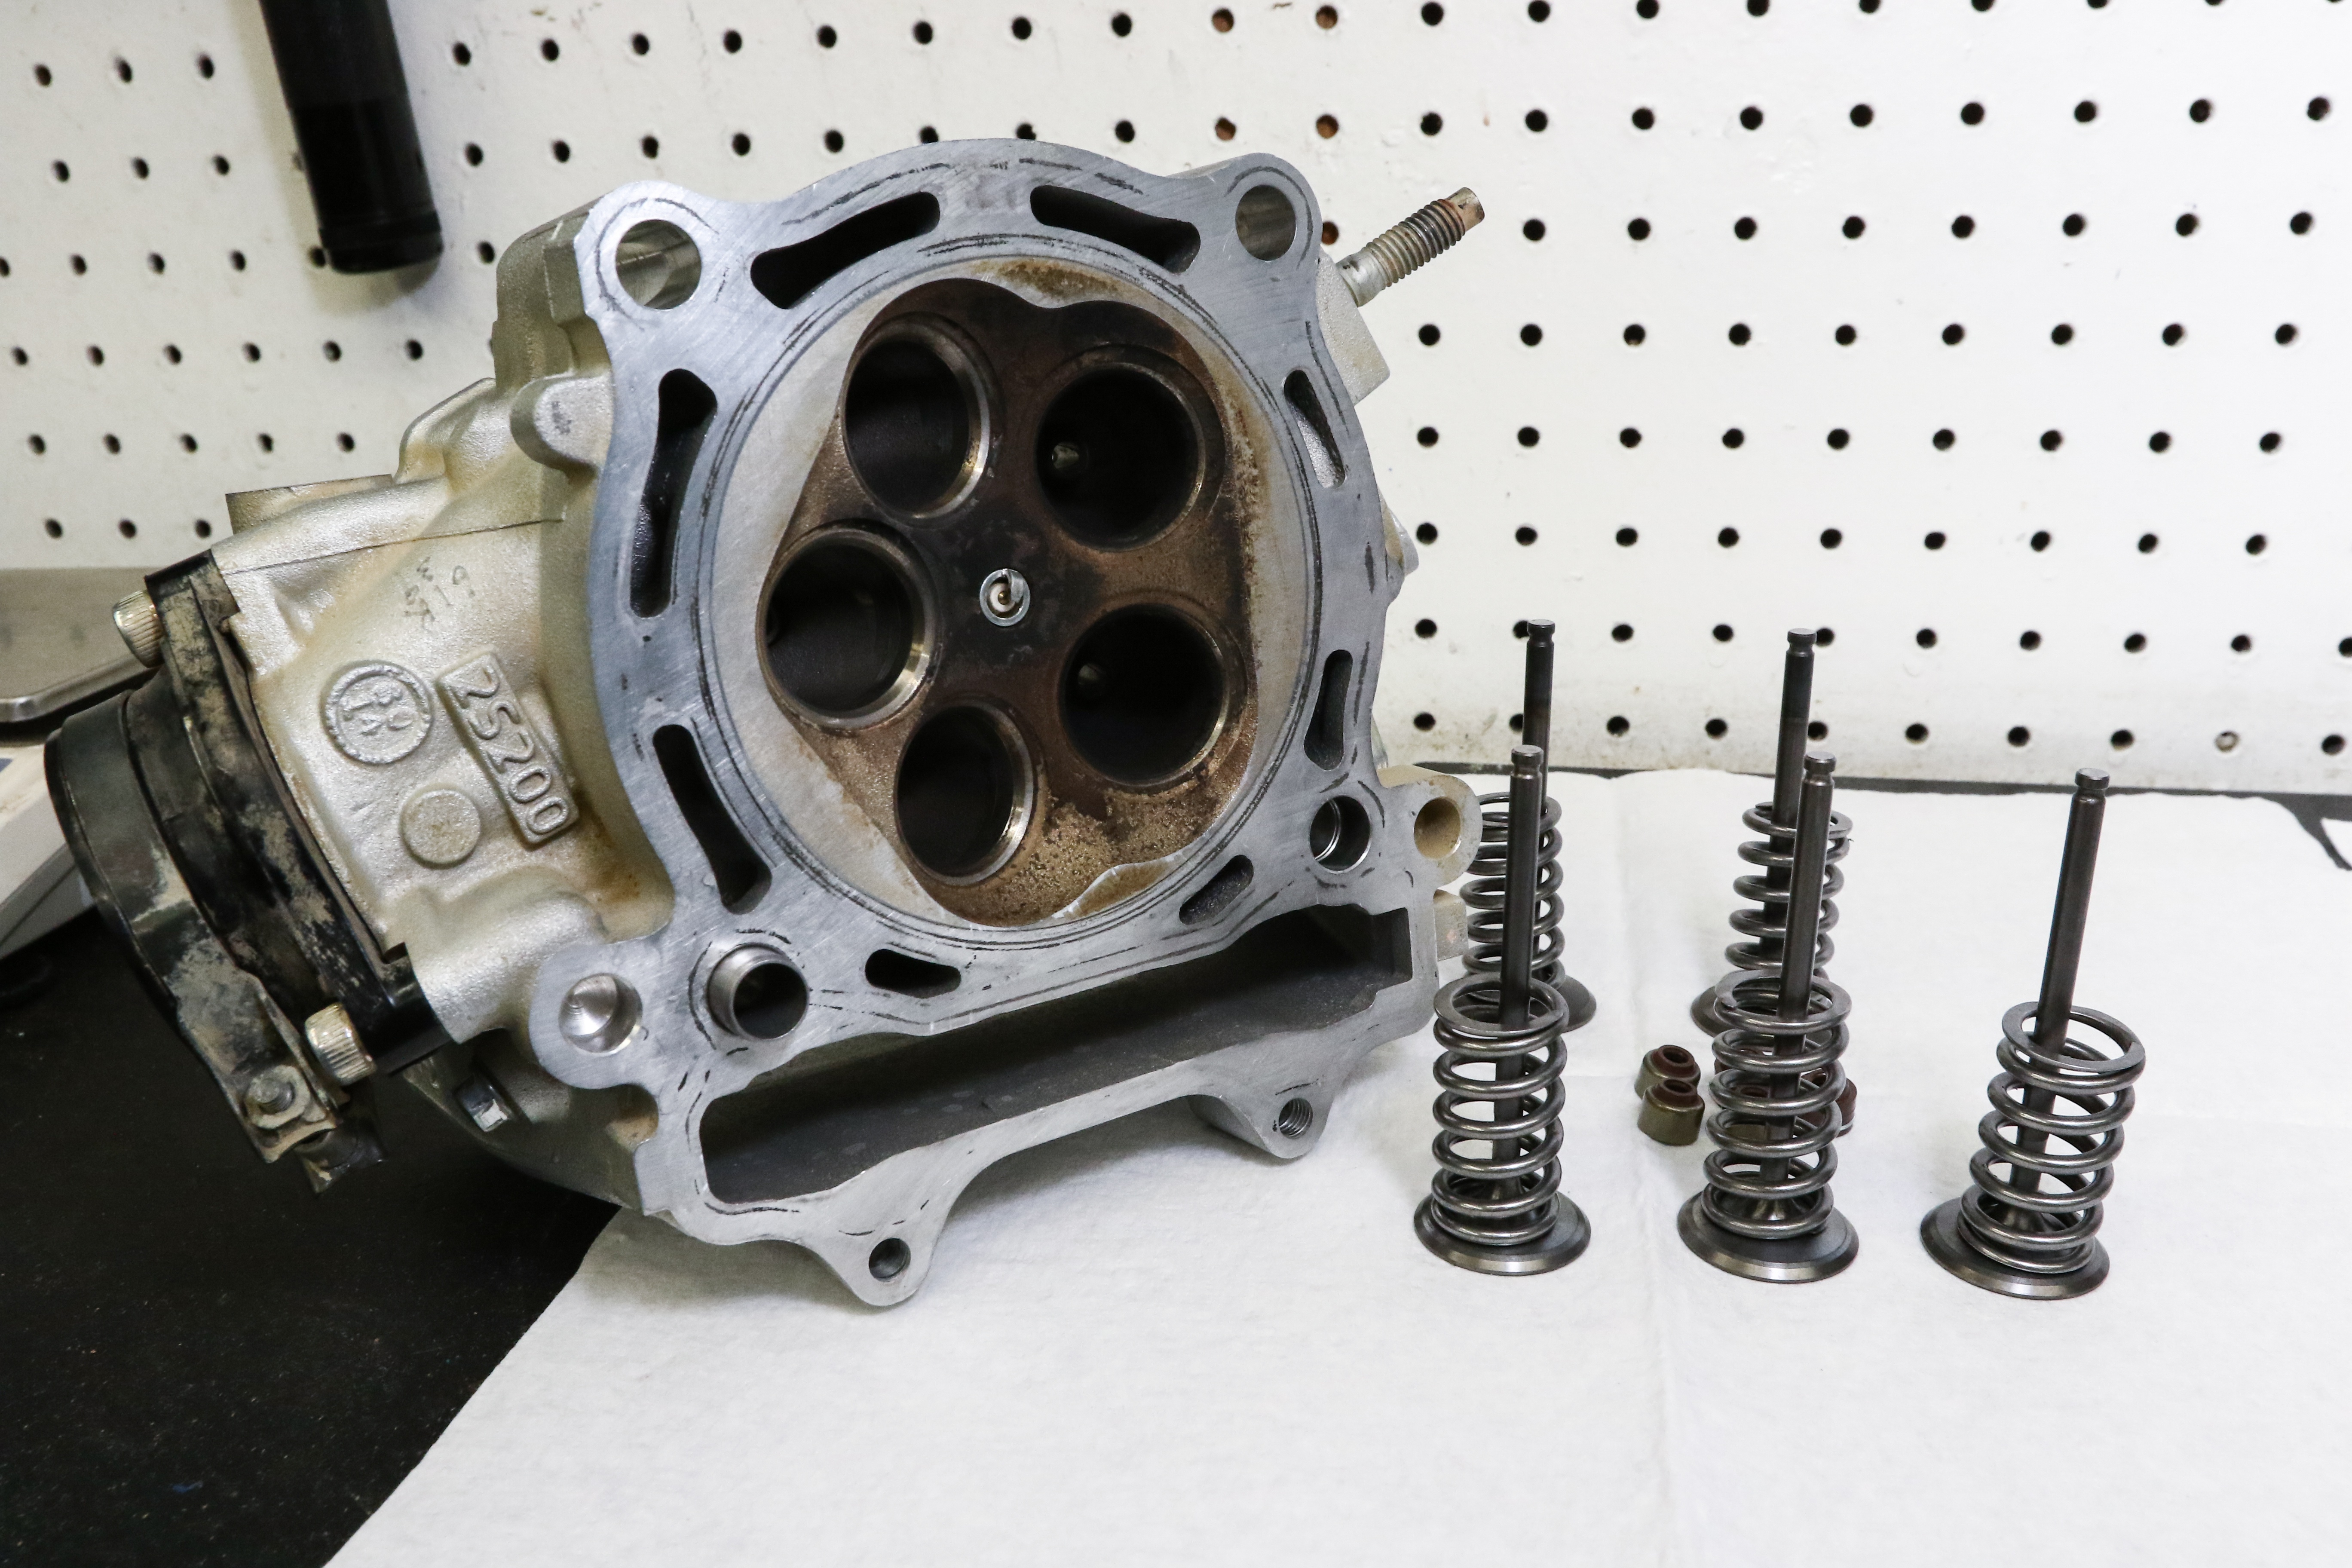 YZ450F Top End Part 2: Rebuilding a Four-Stroke Head